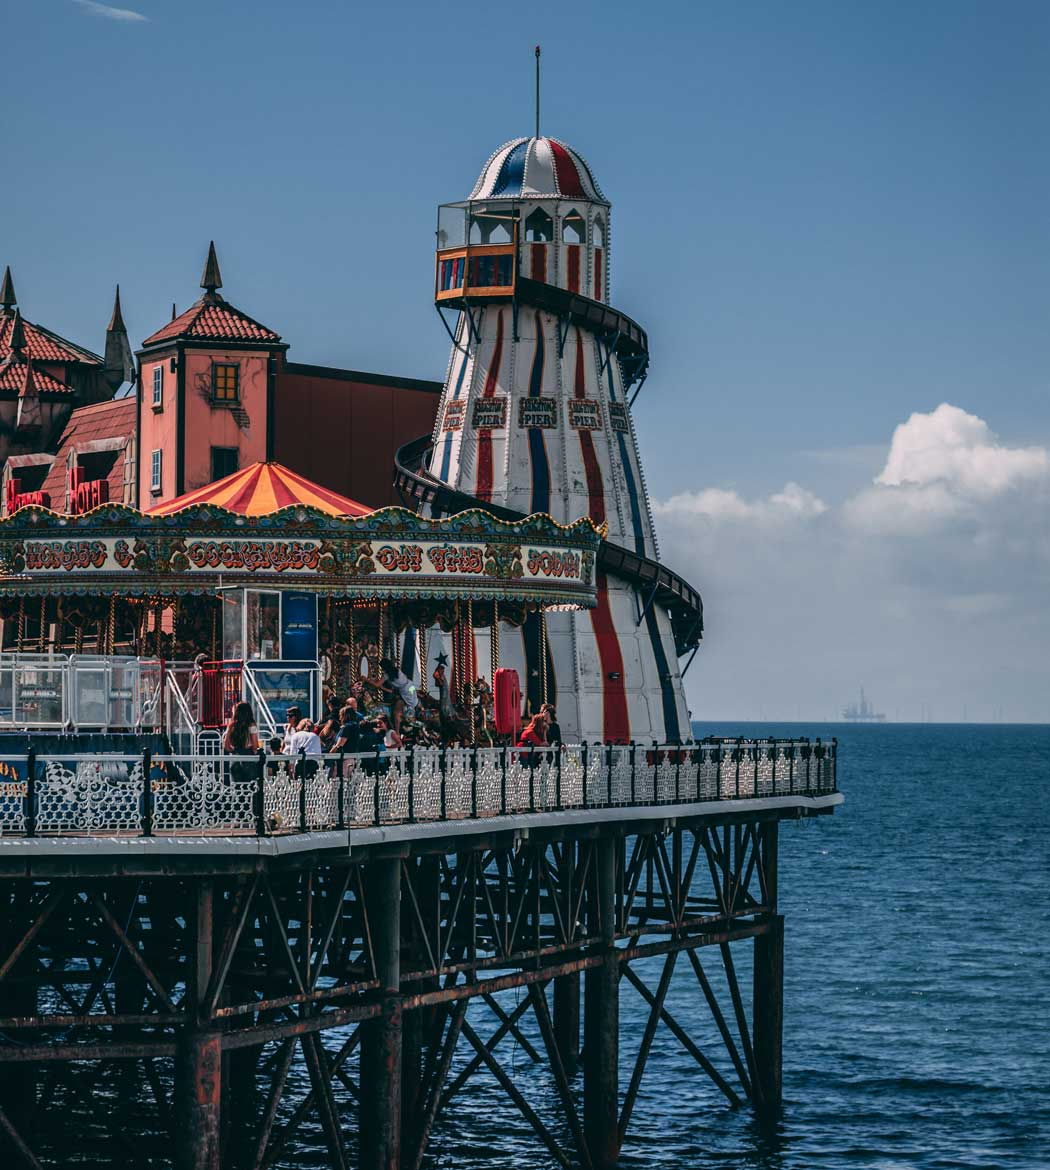 The Helter Skelter is a spiral slide at the end of Brighton Palace Pier (Photo by James Baldwin on Unsplash)